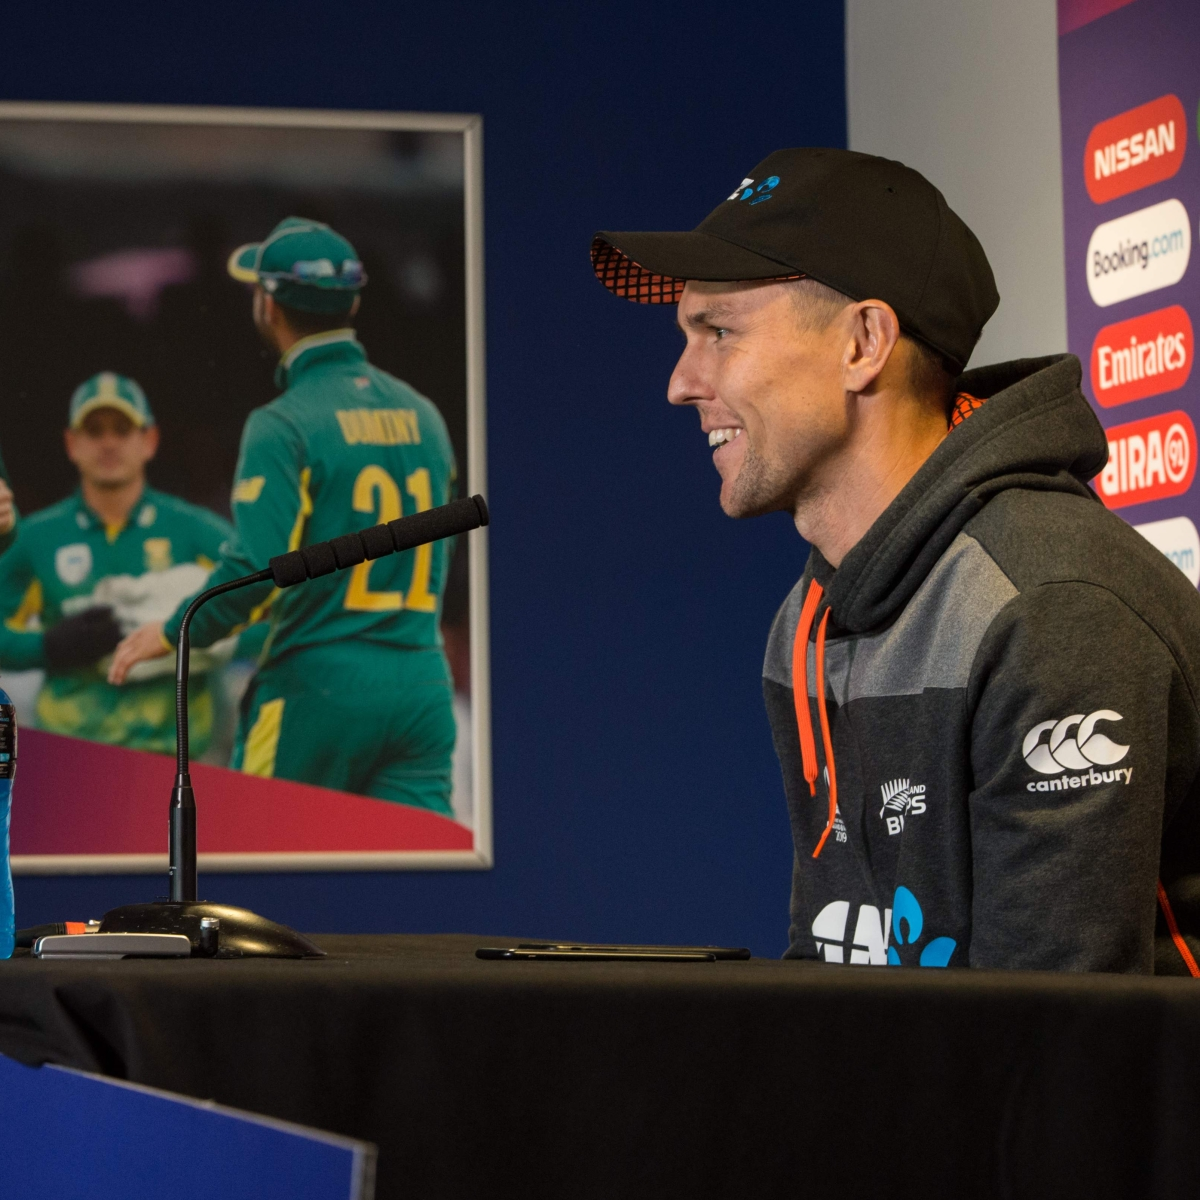 Trent Boult desires to play against South Africa's AB de Villiers